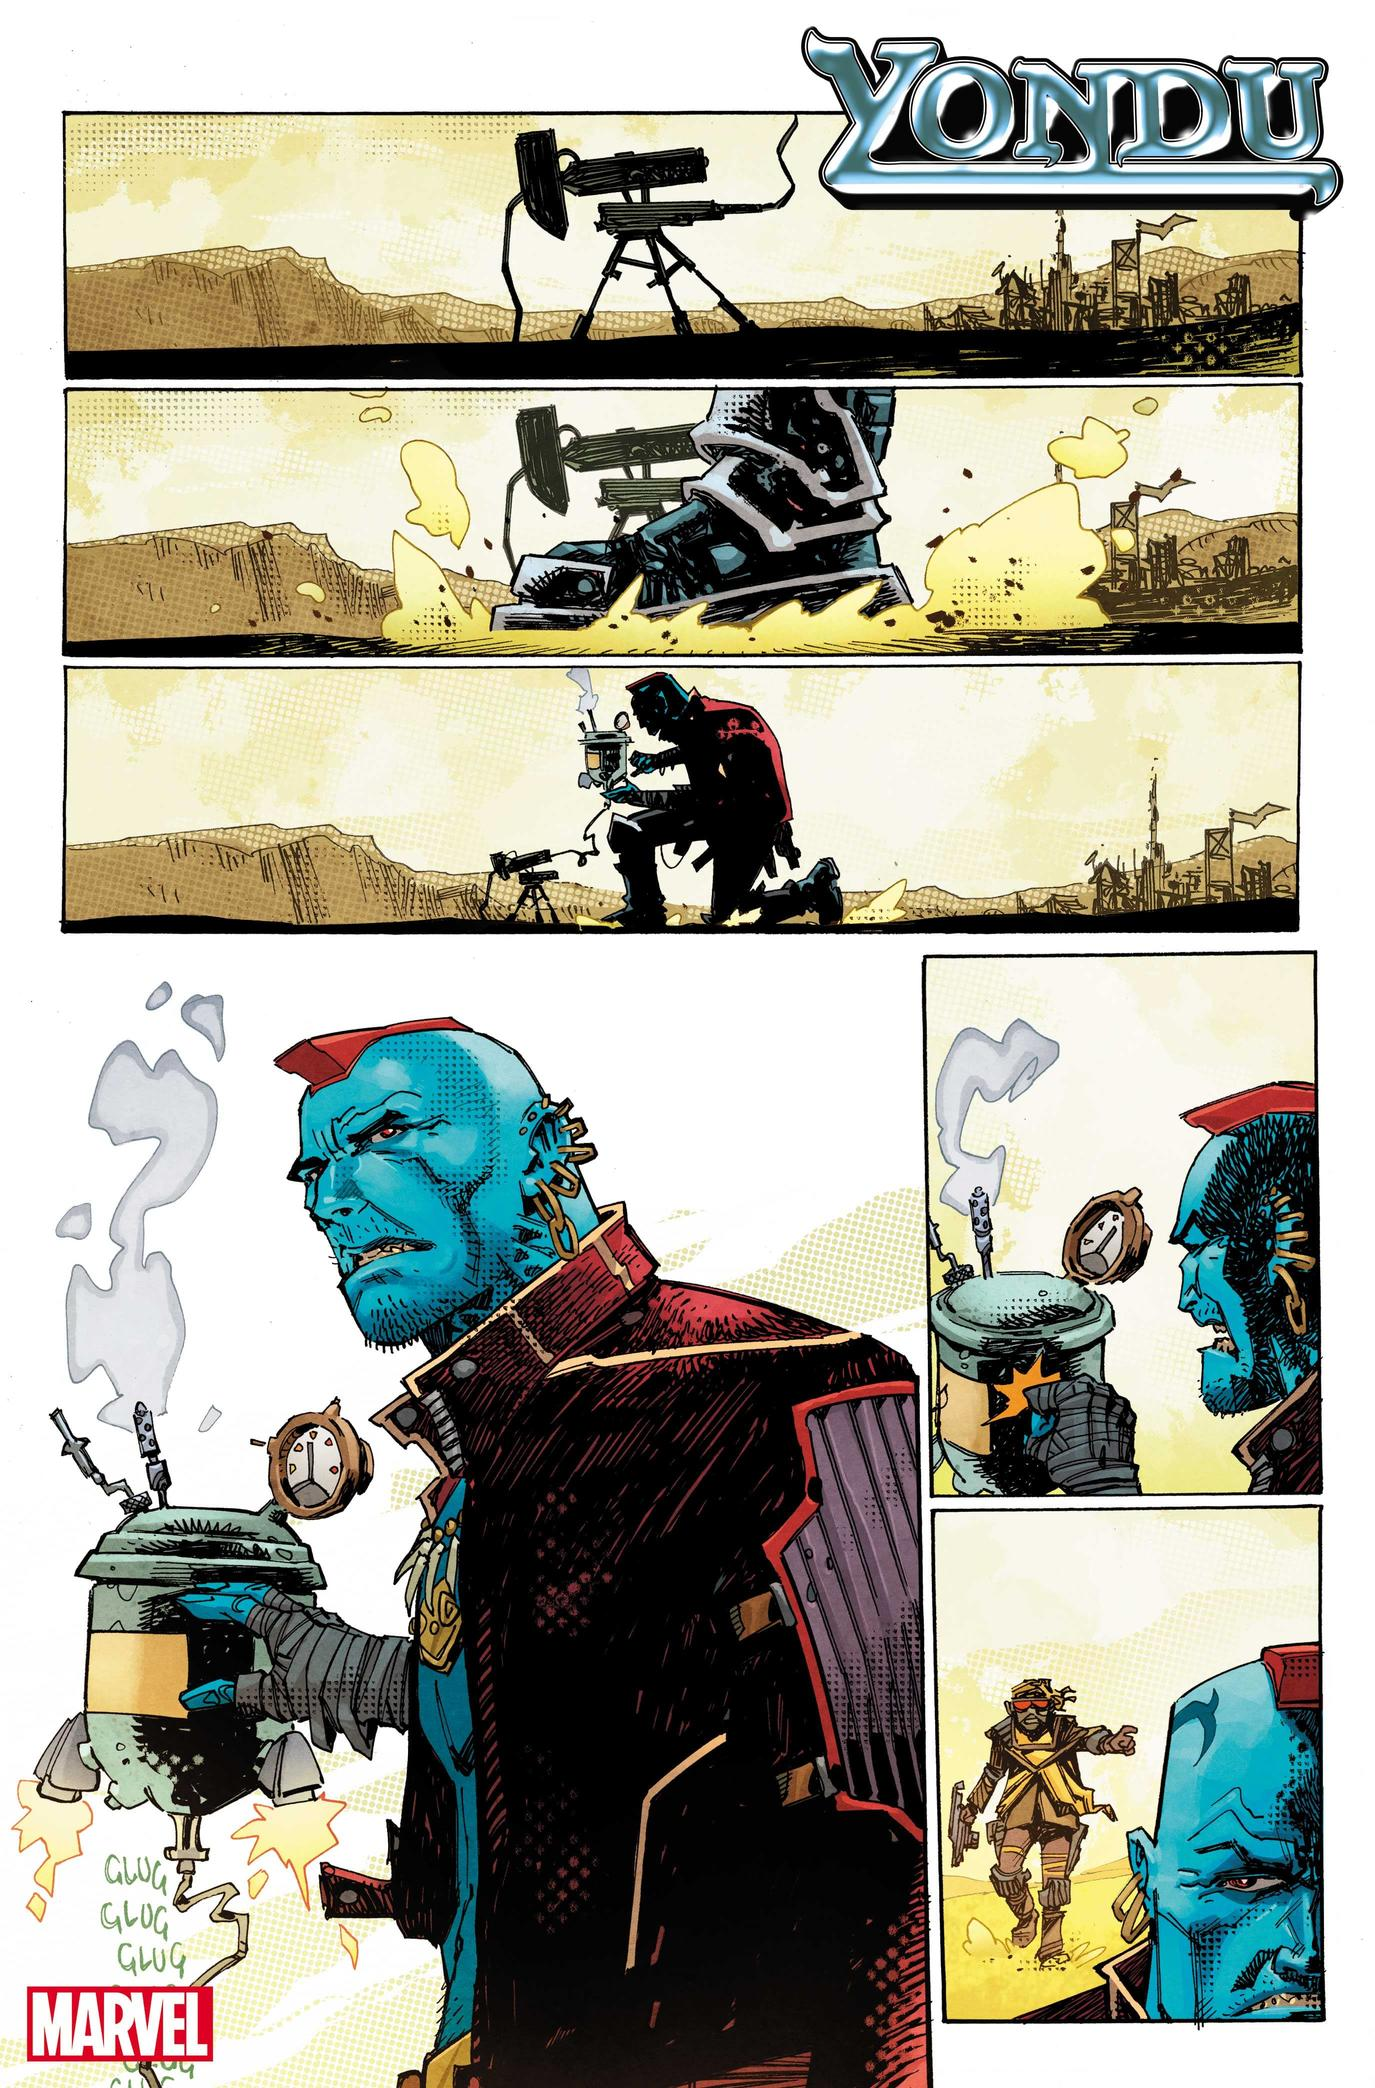 Preview art from Yondu #1